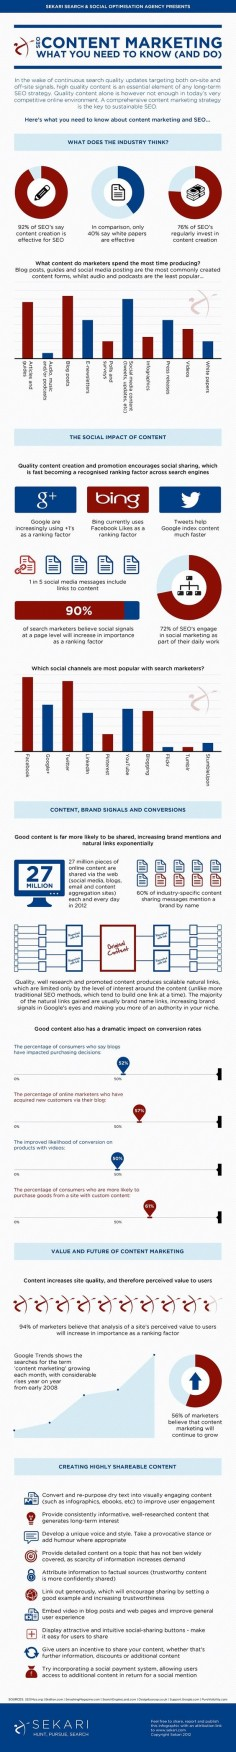 #SEO #content #marketing what you need to know and do #tips #infographic